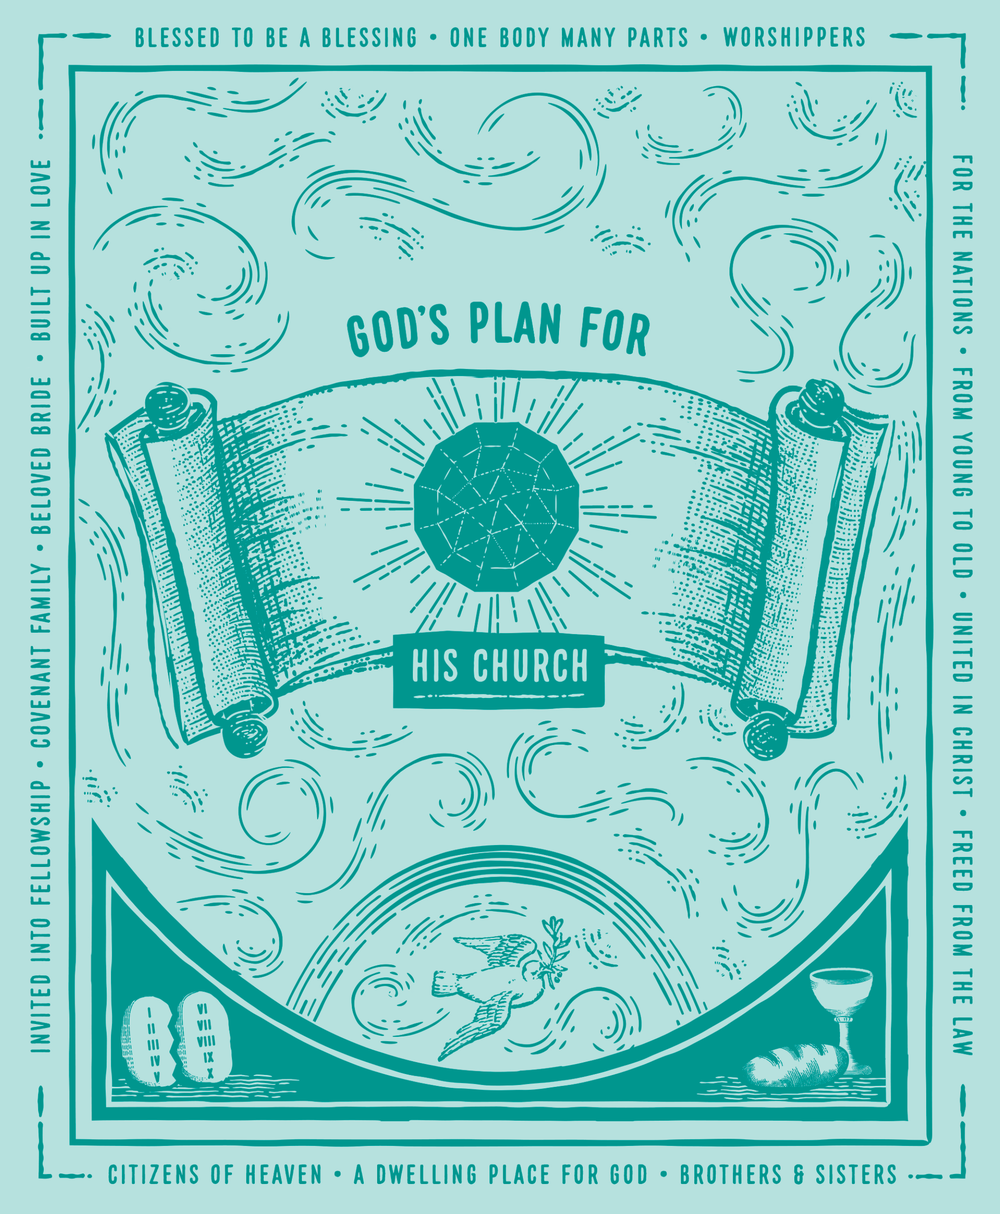 SMPC - GENERAL - Bulletin Redesign - God's Plan for His Church - SHELL - v3.png